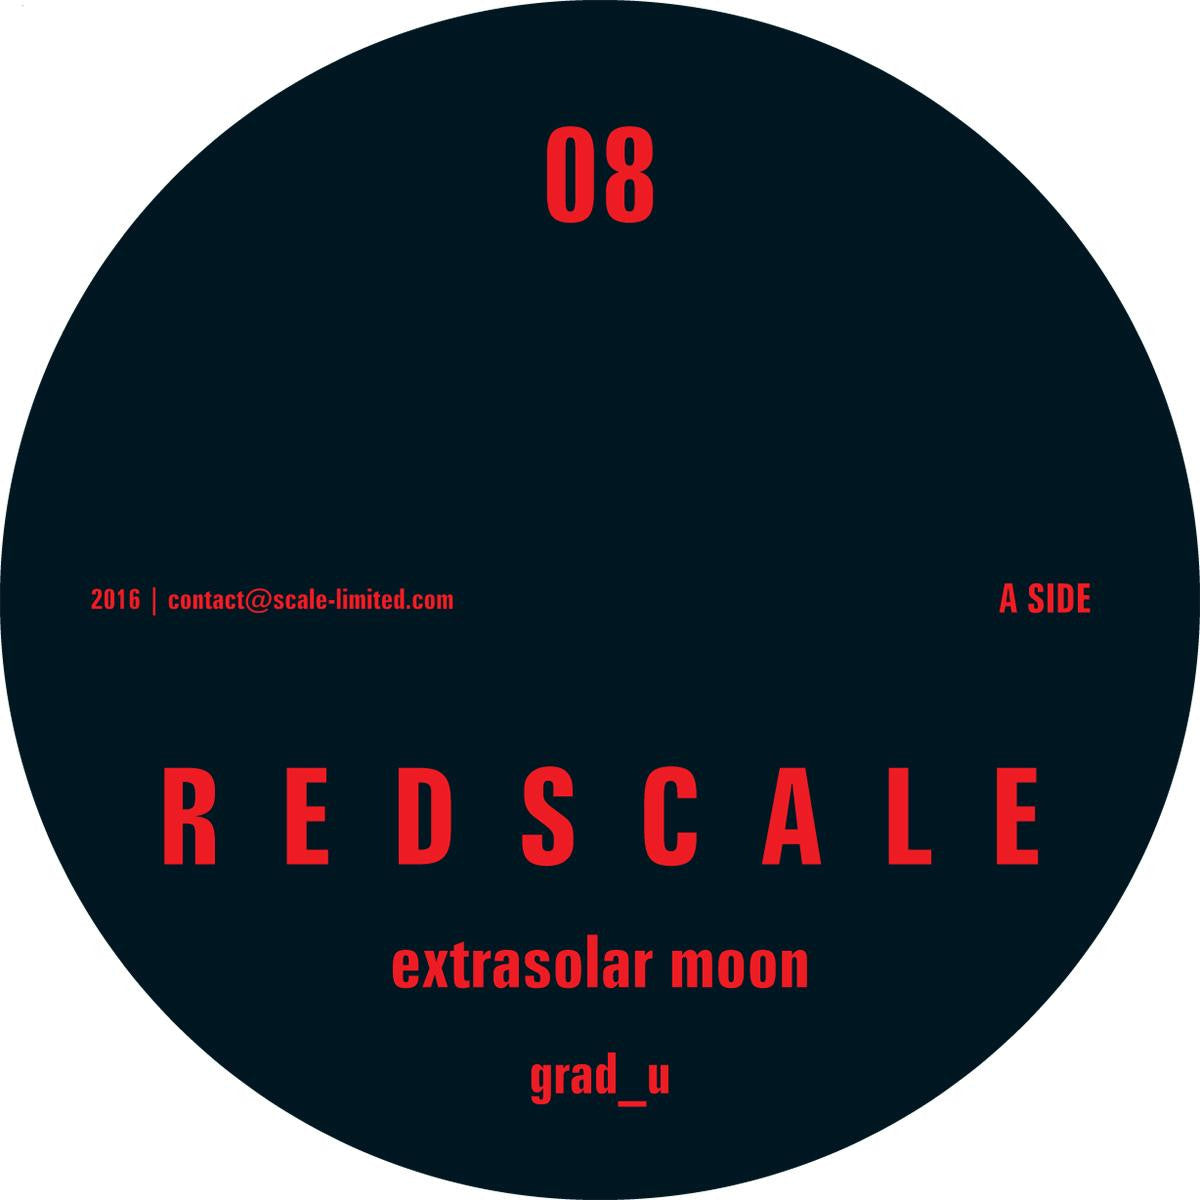 Grad_U - Redscale 08 [Red & Black Marbled Vinyl] , Vinyl - Redscale, Unearthed Sounds